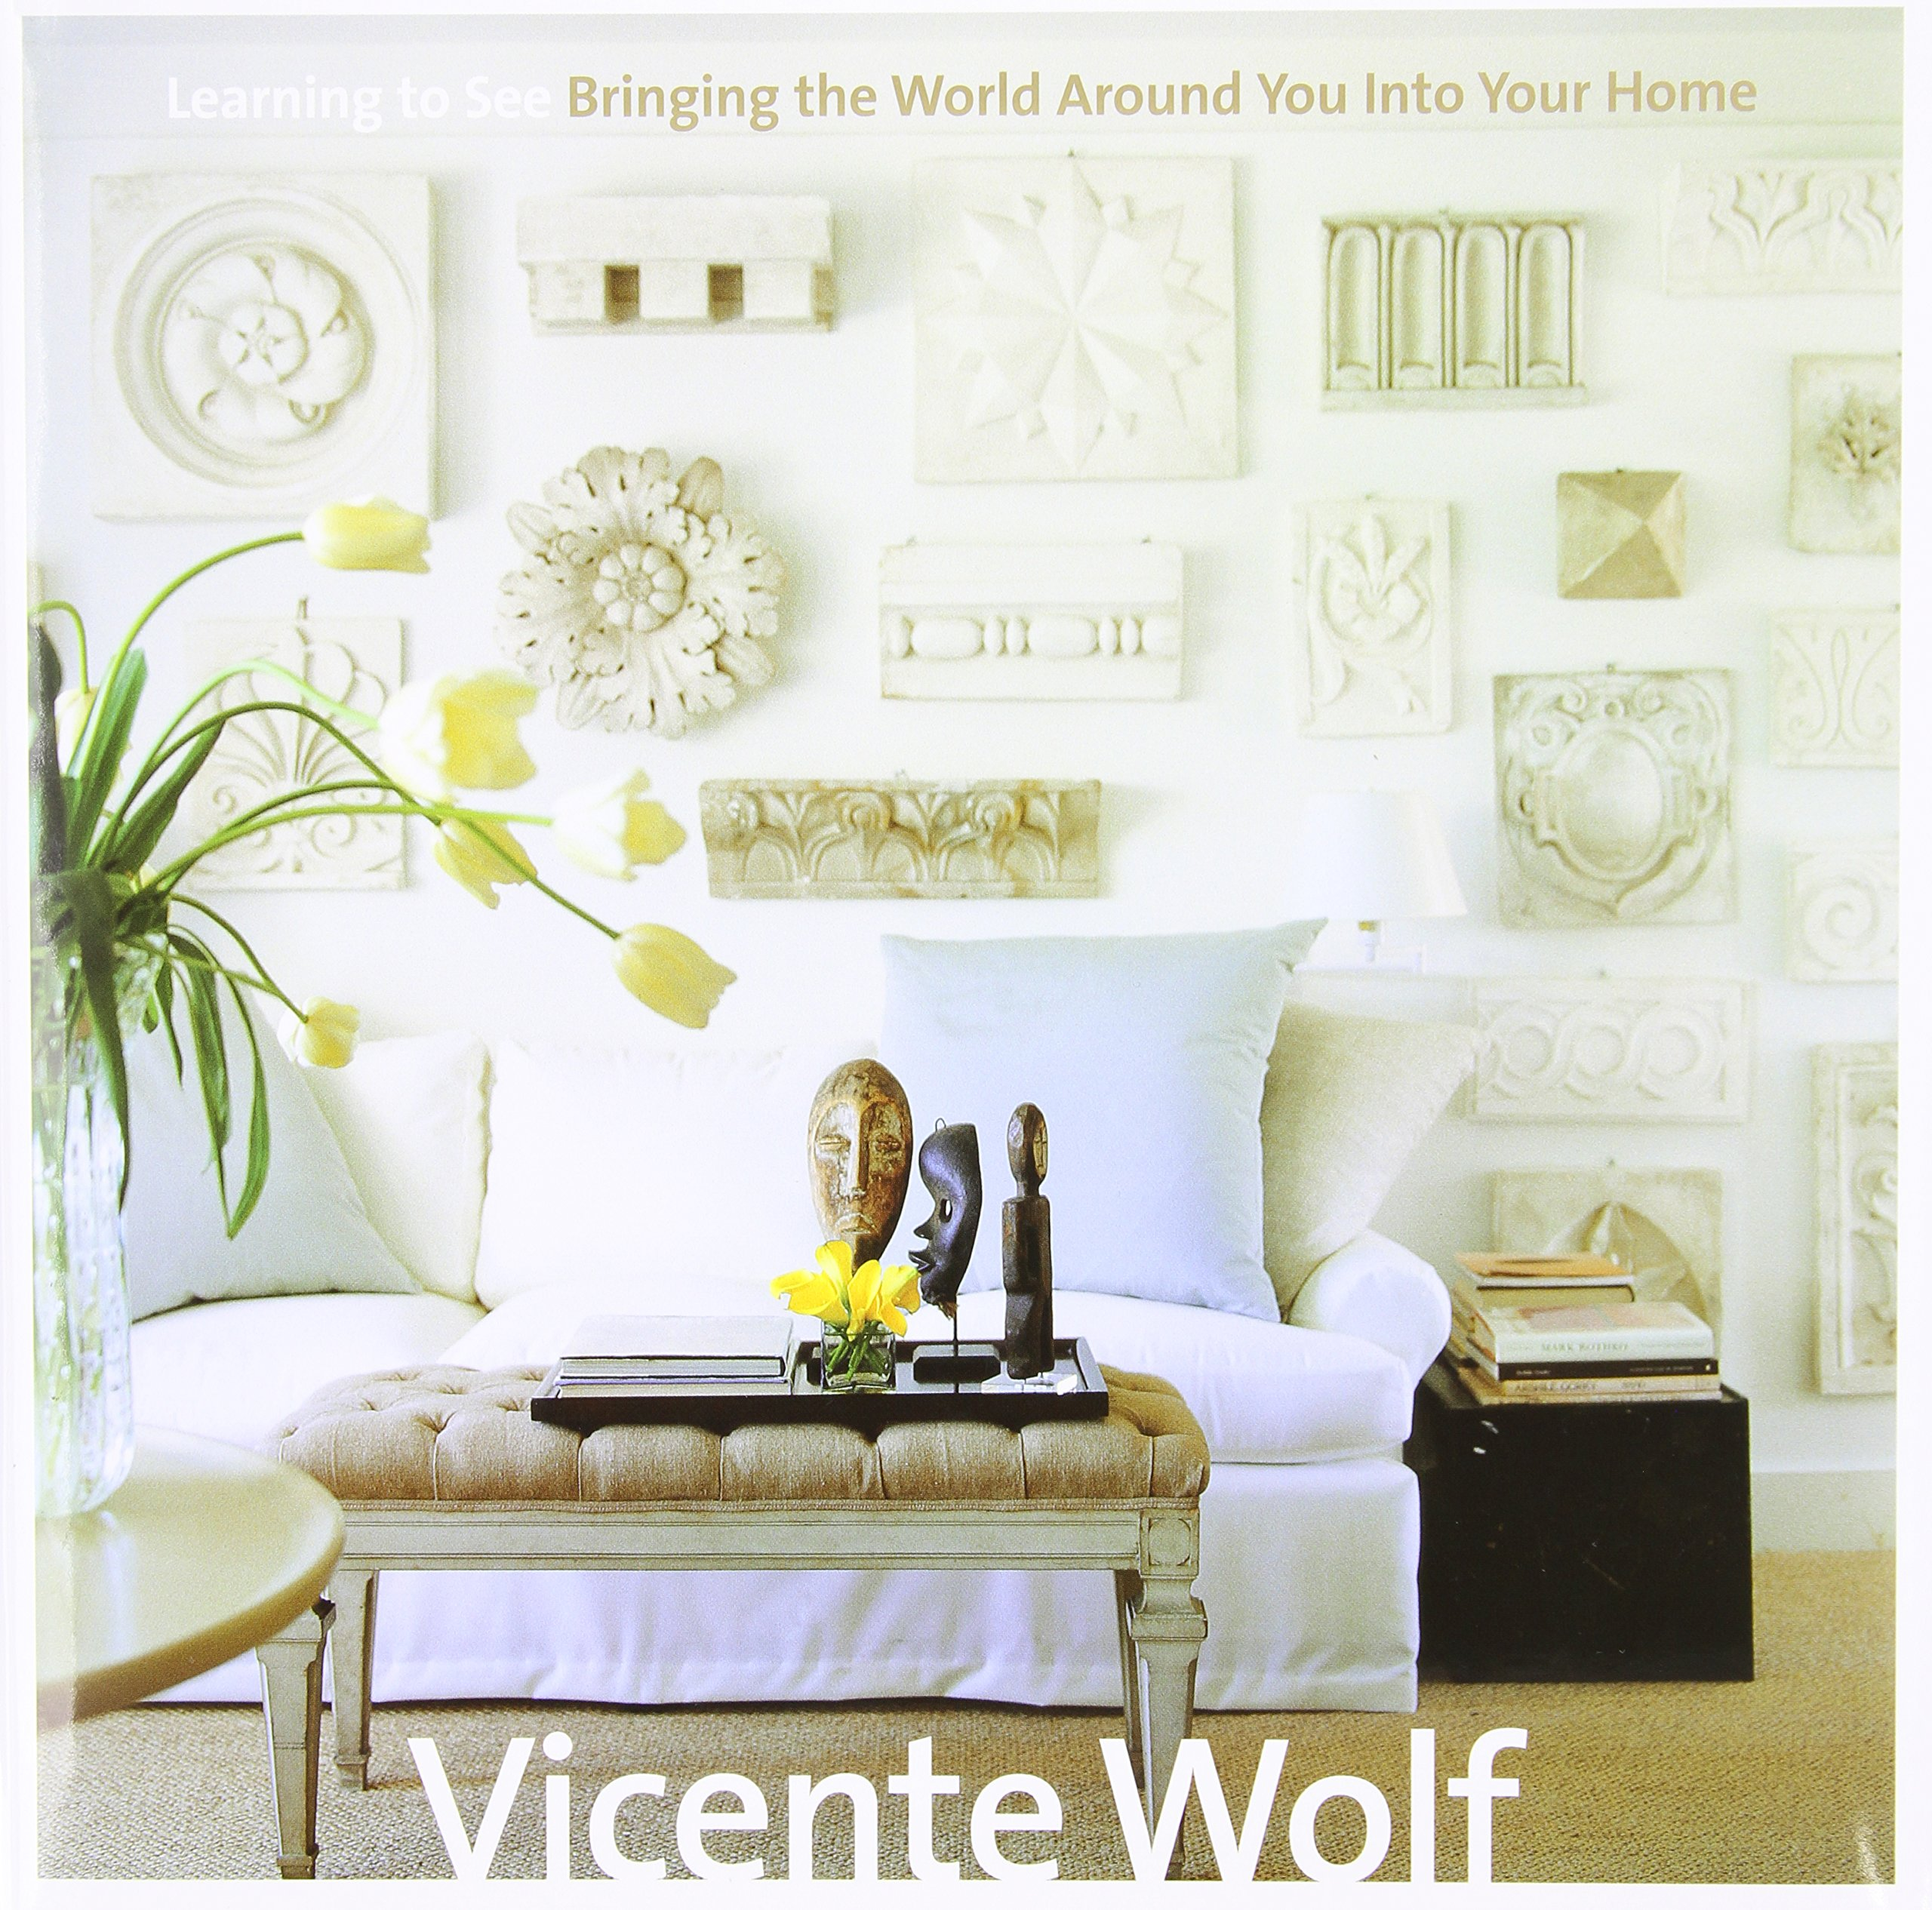 Learning to See: Bringing the World Around You Into Your Home PDF ePub book